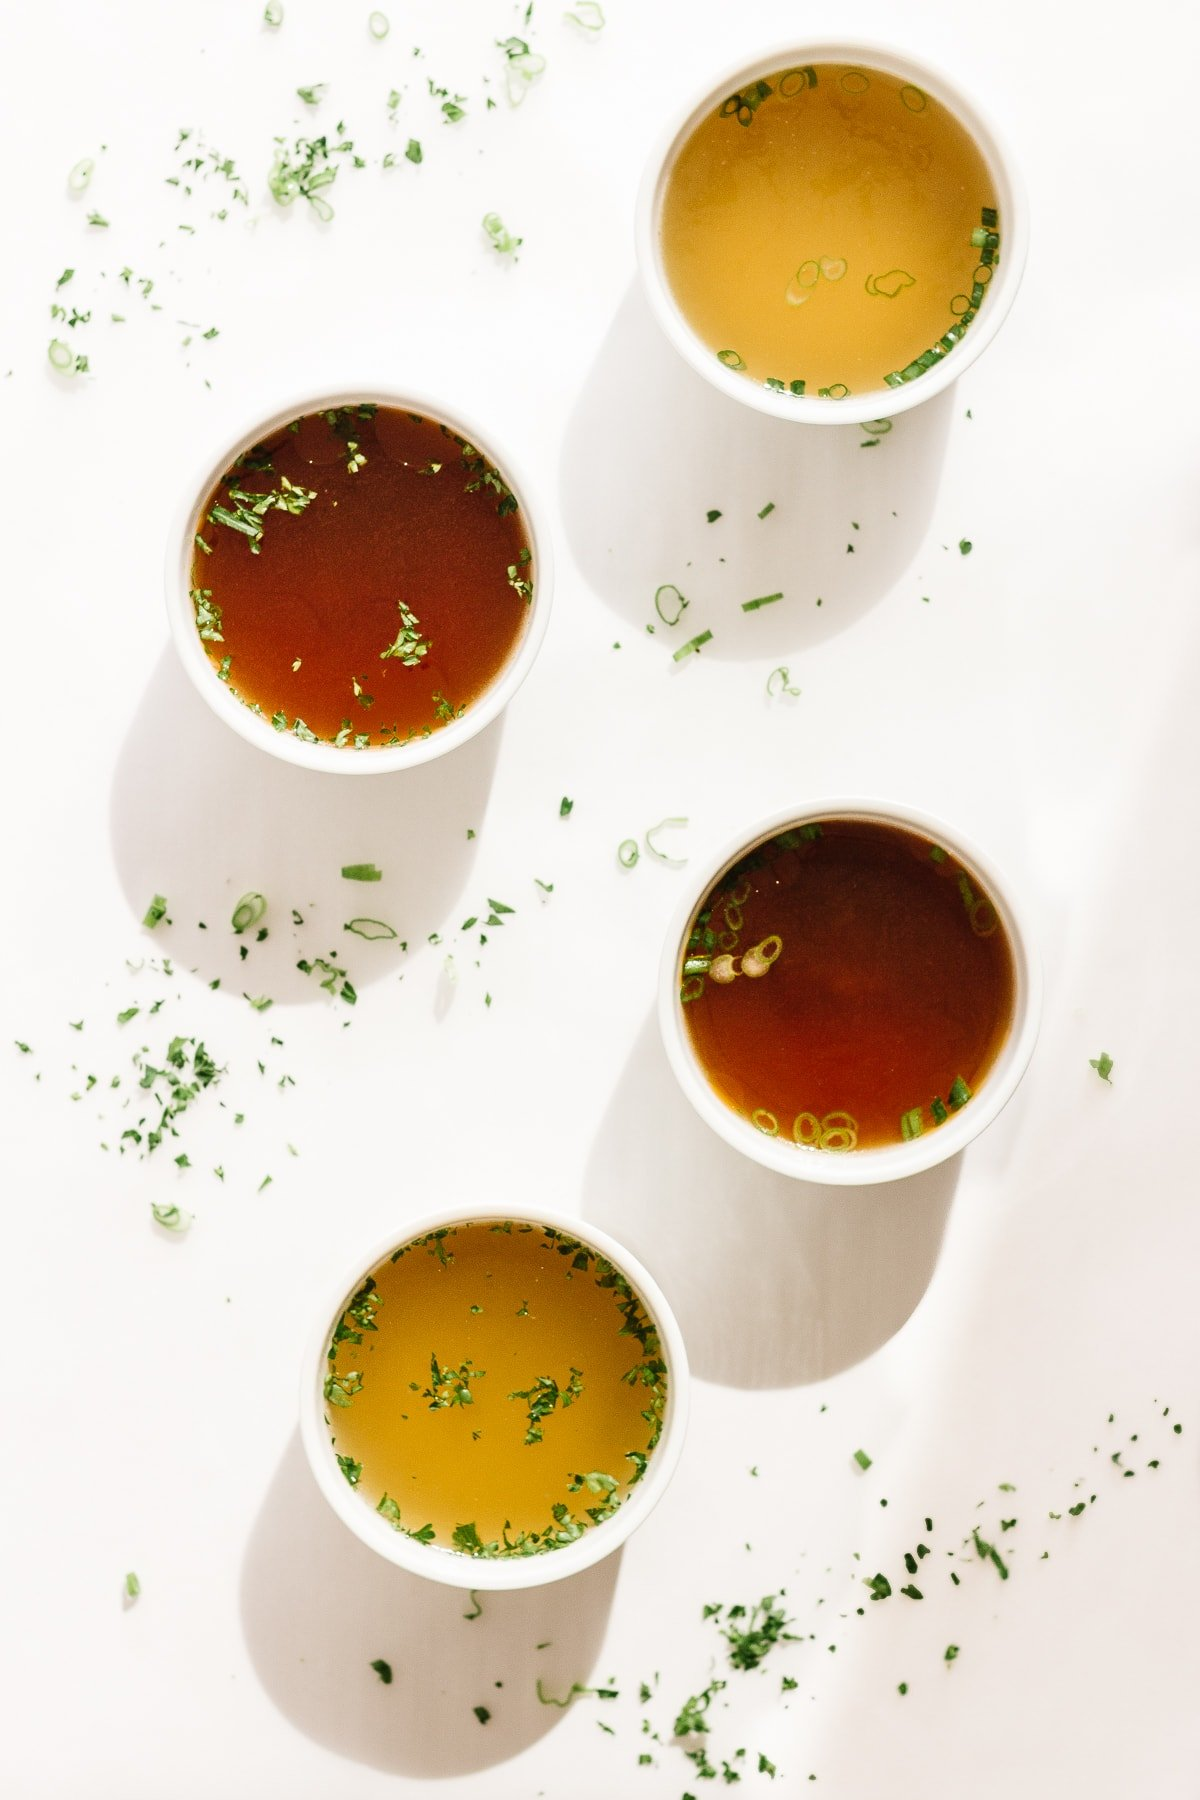 Four white bowls of broth set on a white background with chopped herbs scattered.